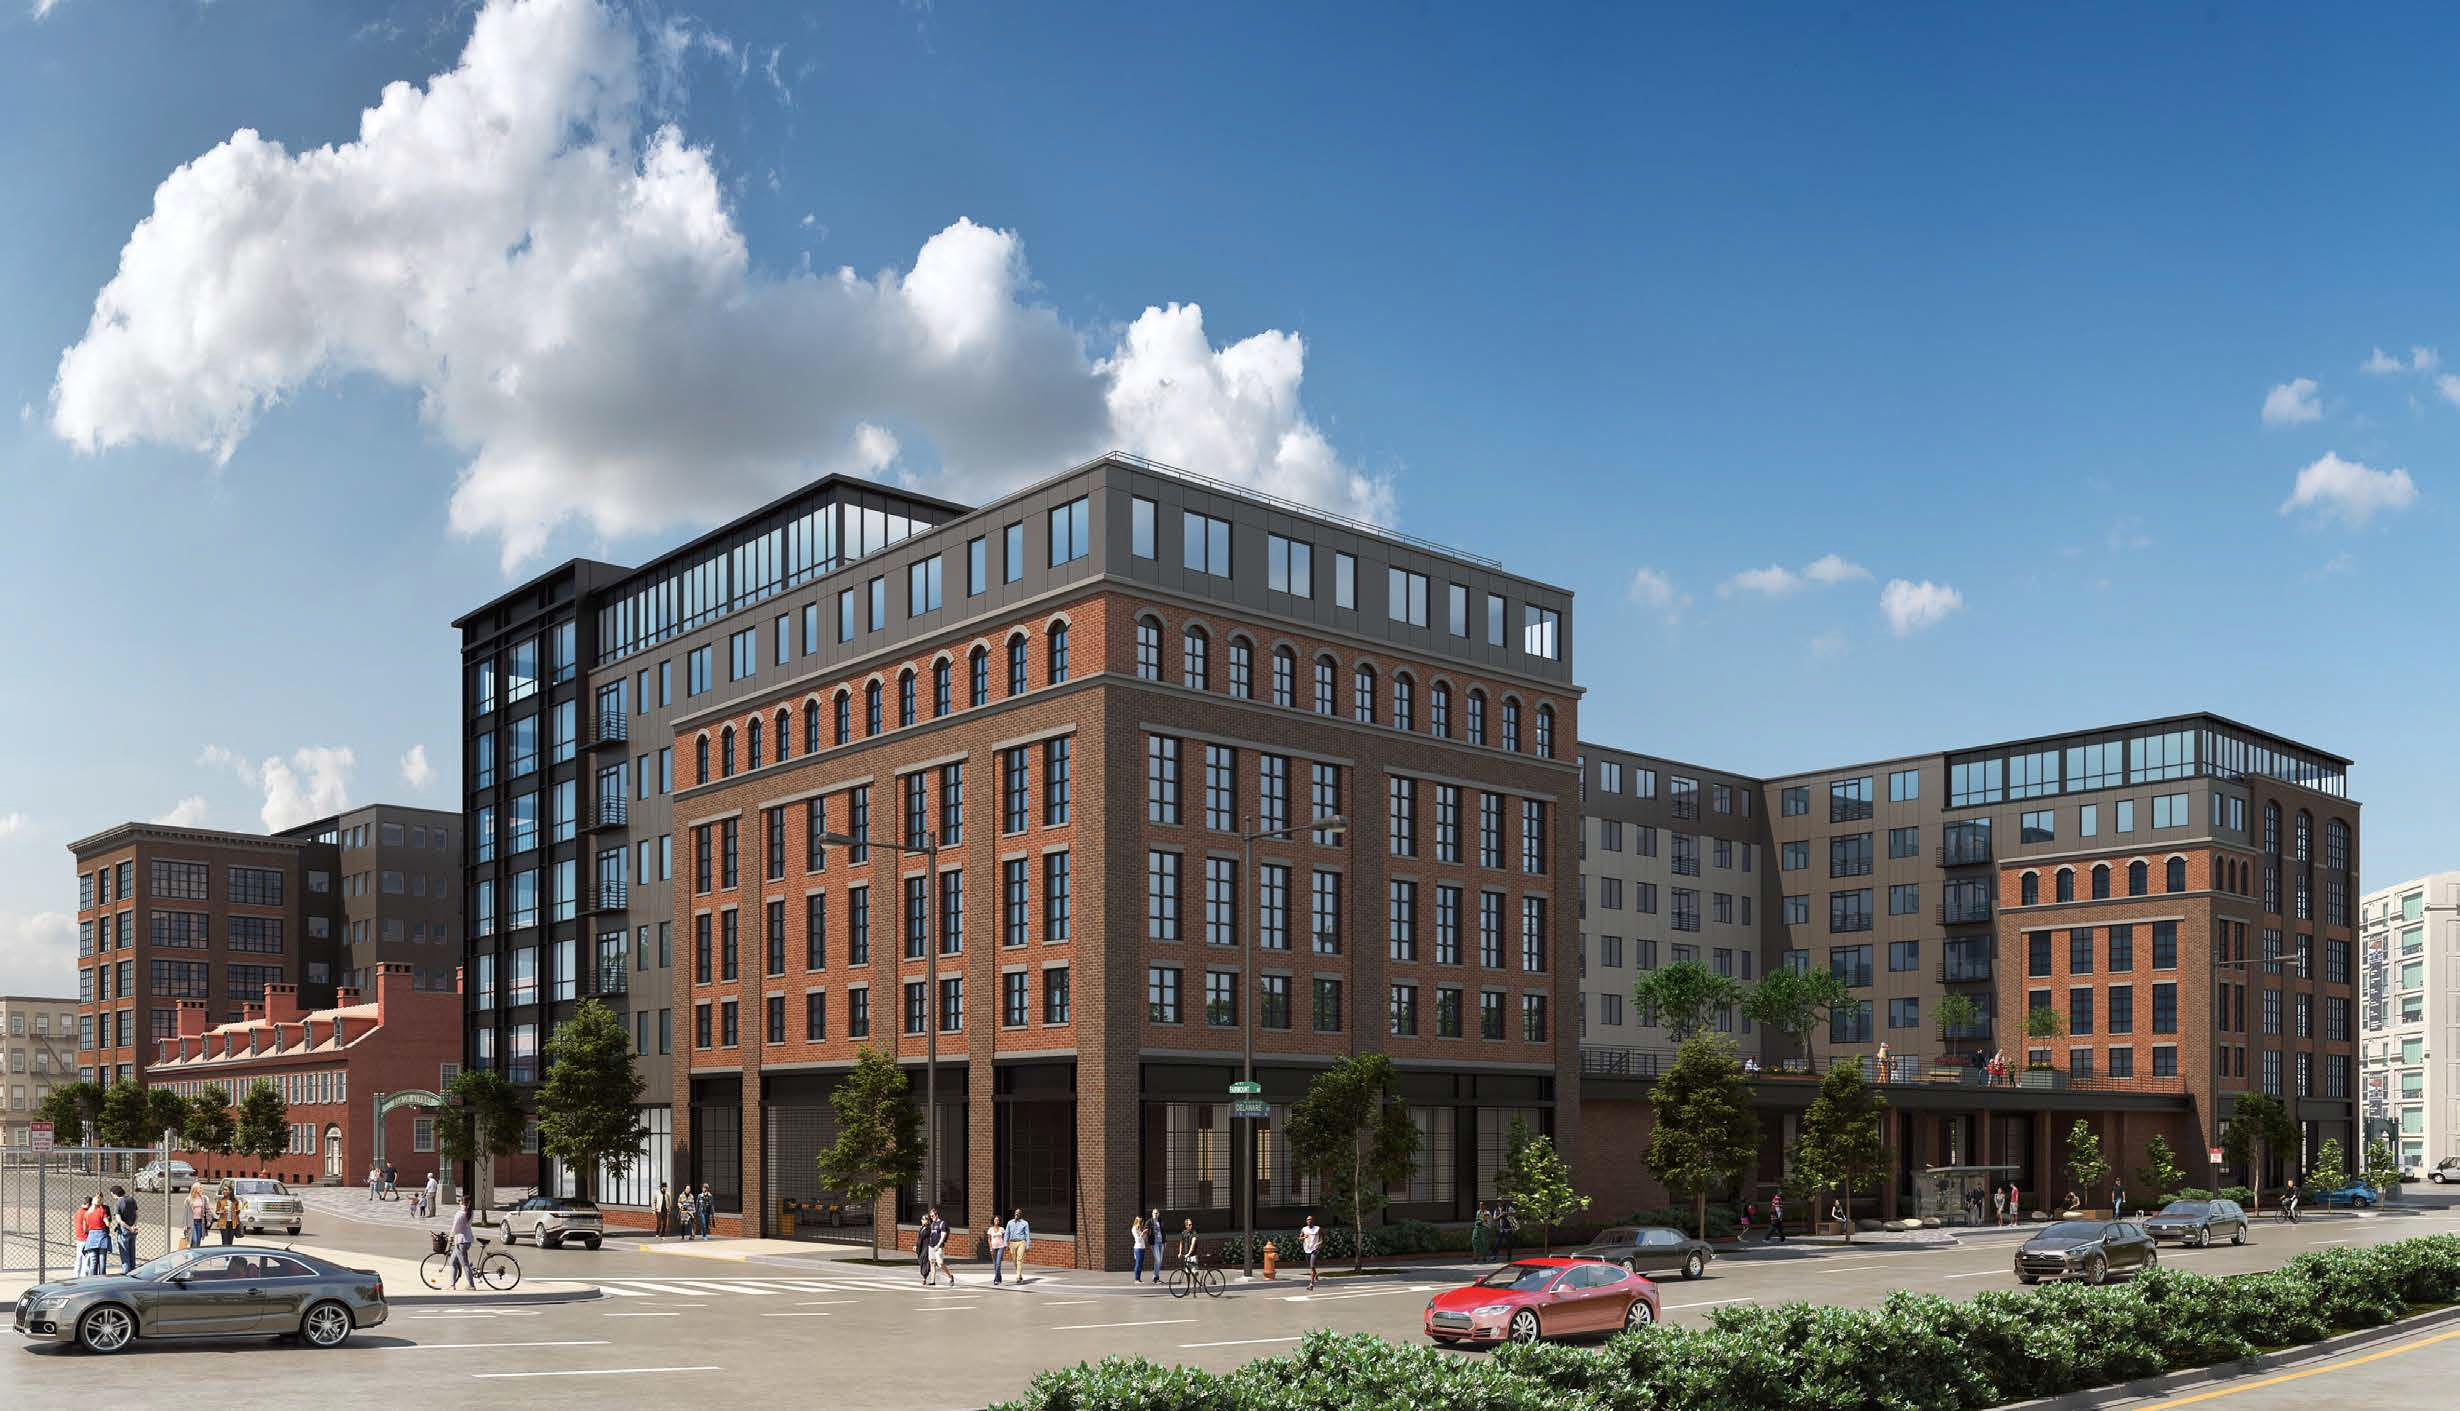 700-730 Delaware Avenue. Credit: JKRP Architects via the Civic Design Review